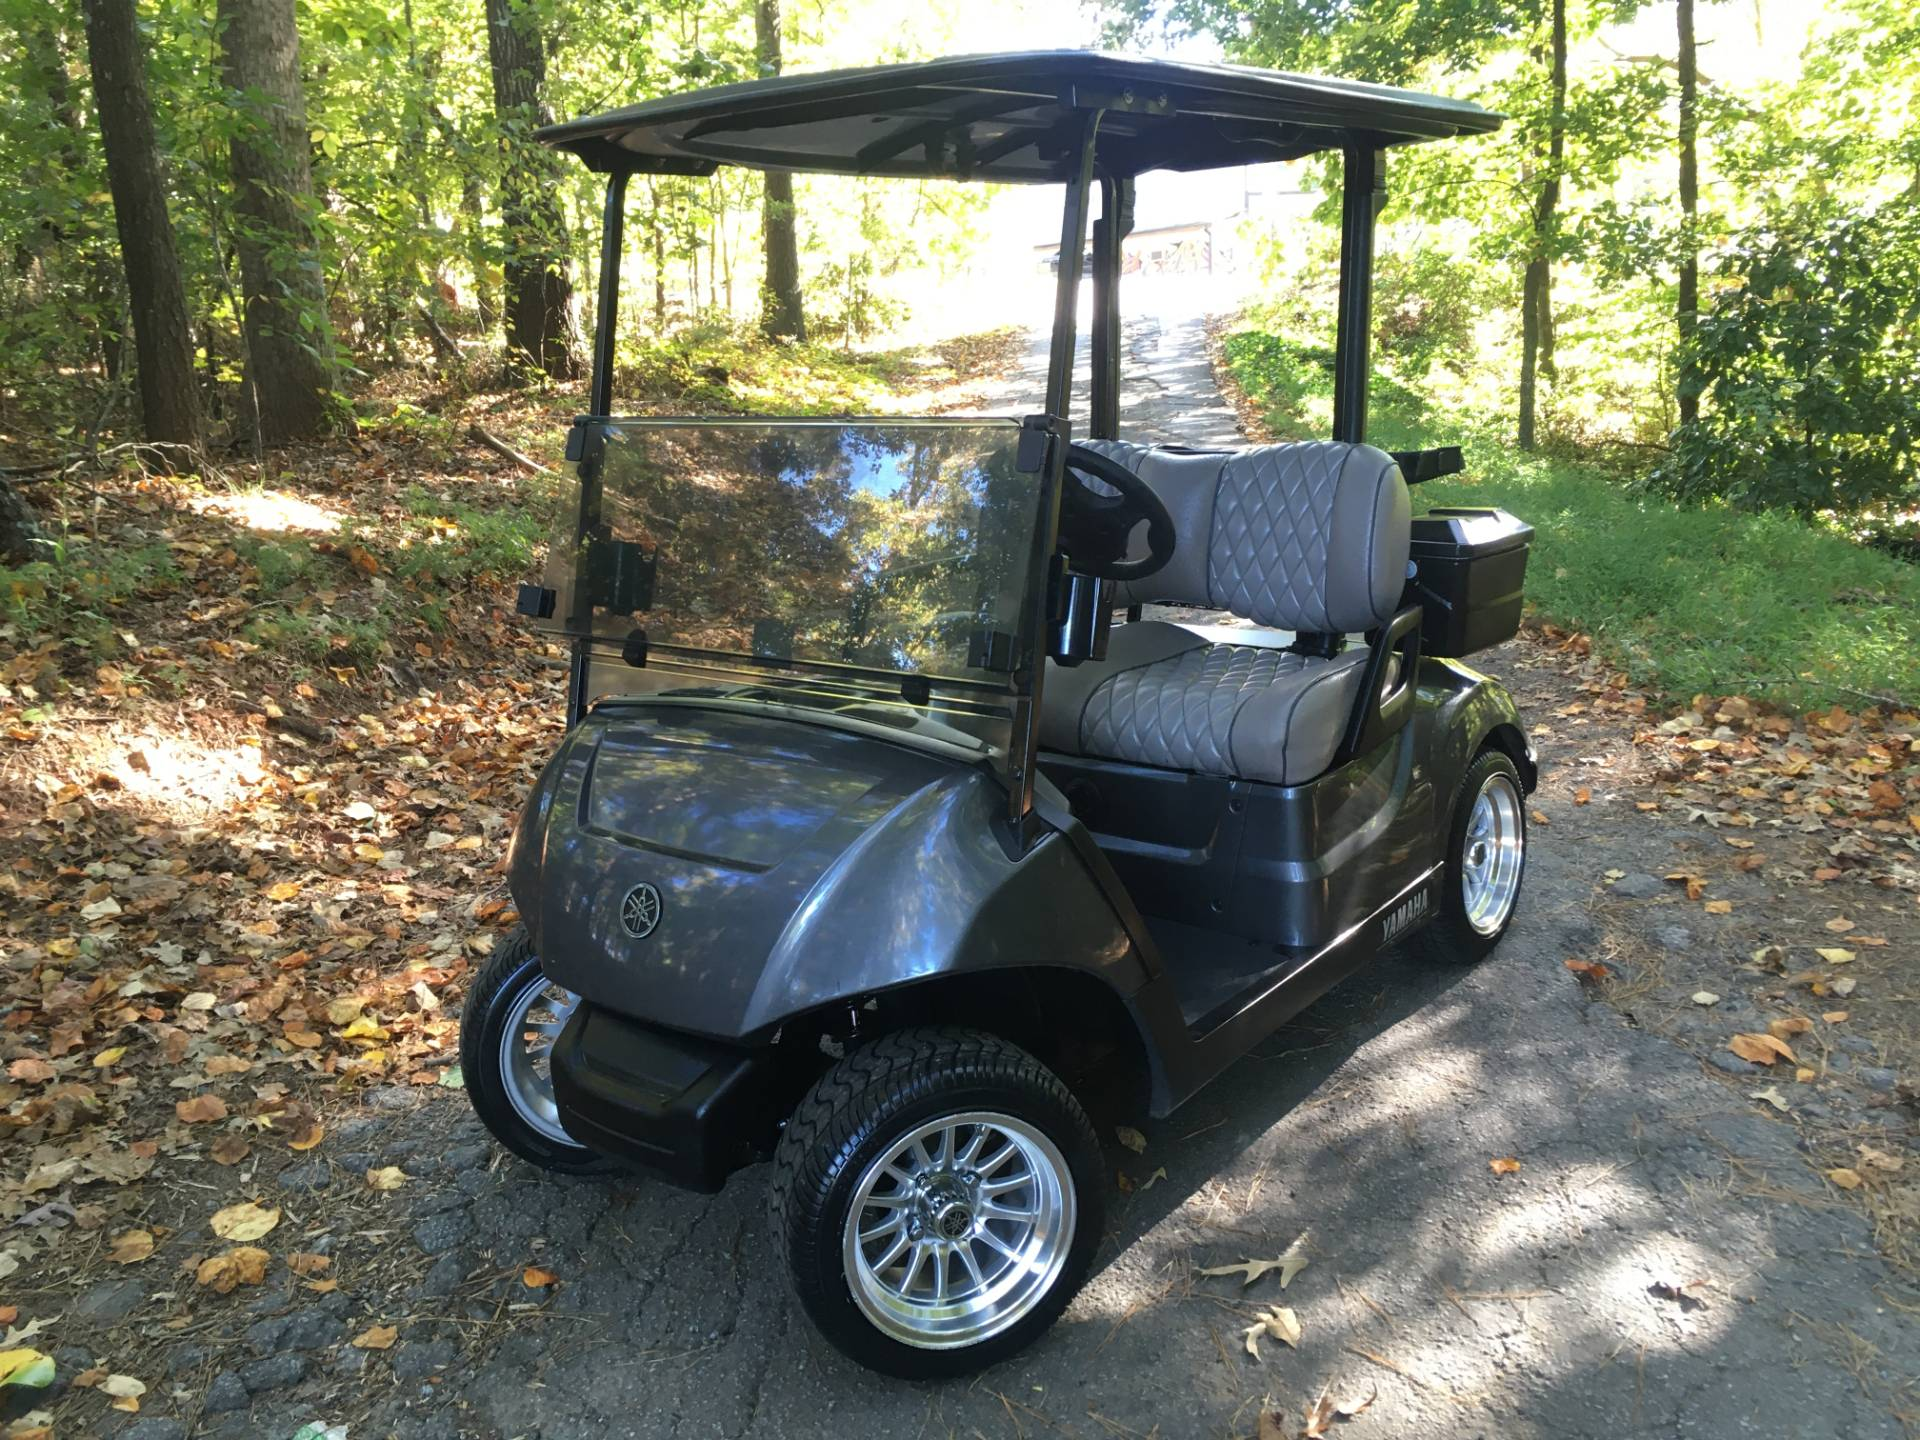 2018 YAMAHA DRIVE 2 ELECTRIC GOLF CART in Woodstock, Georgia - Photo 1